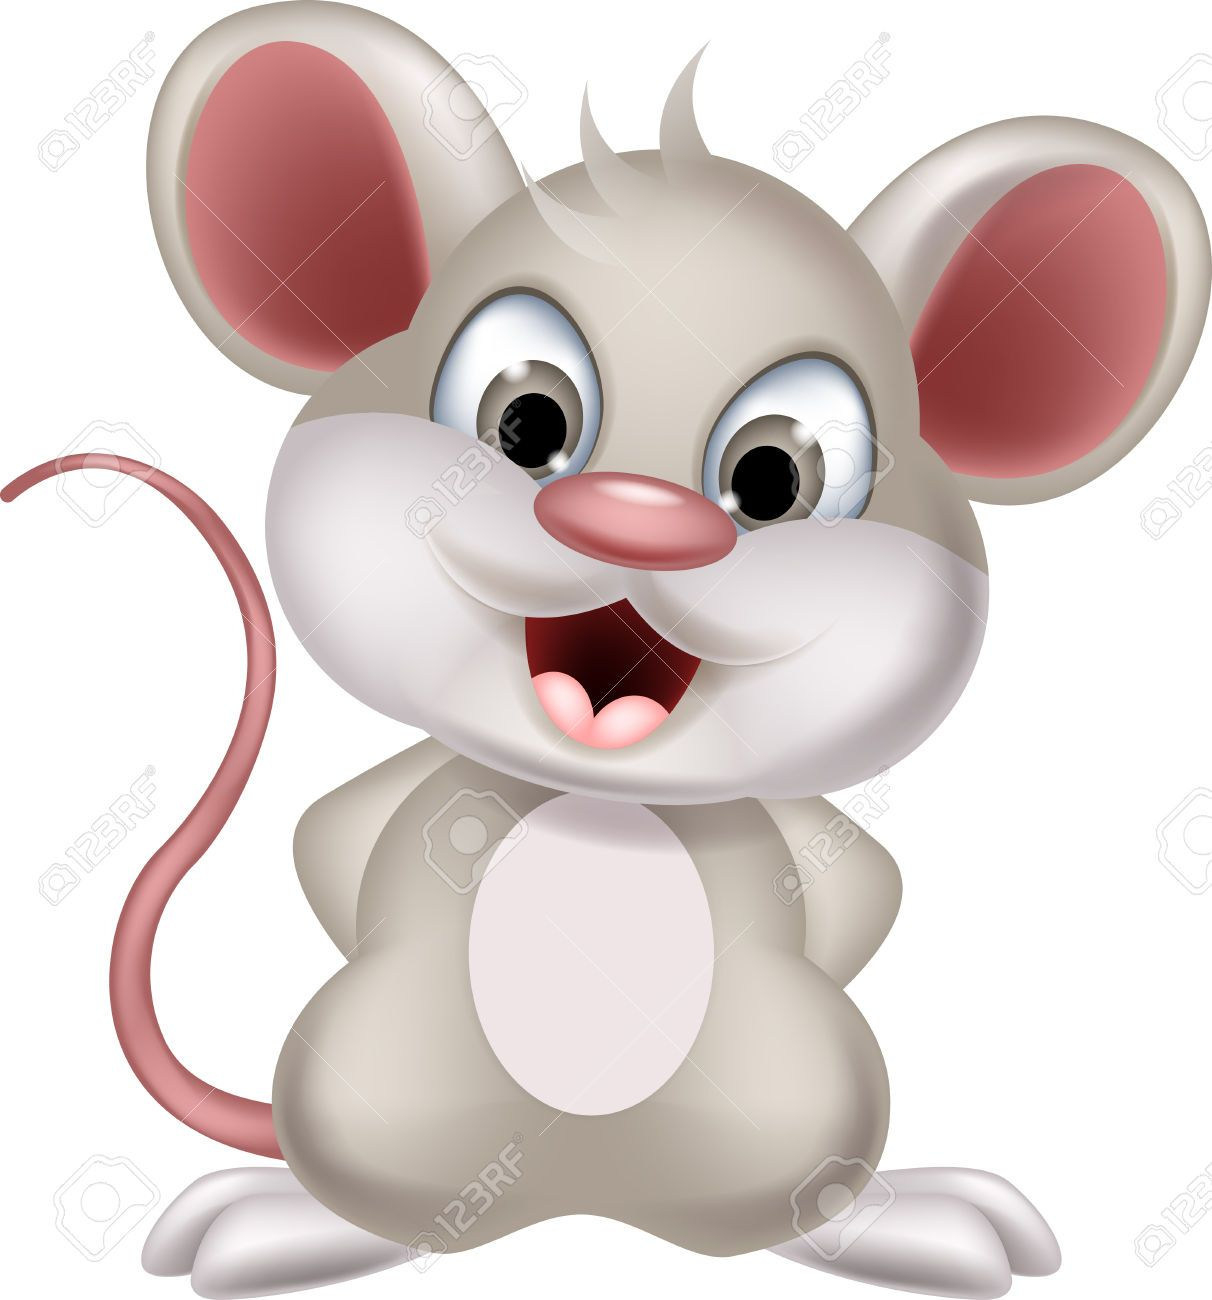 Mouse Clipart Free PNG Image Illustoon